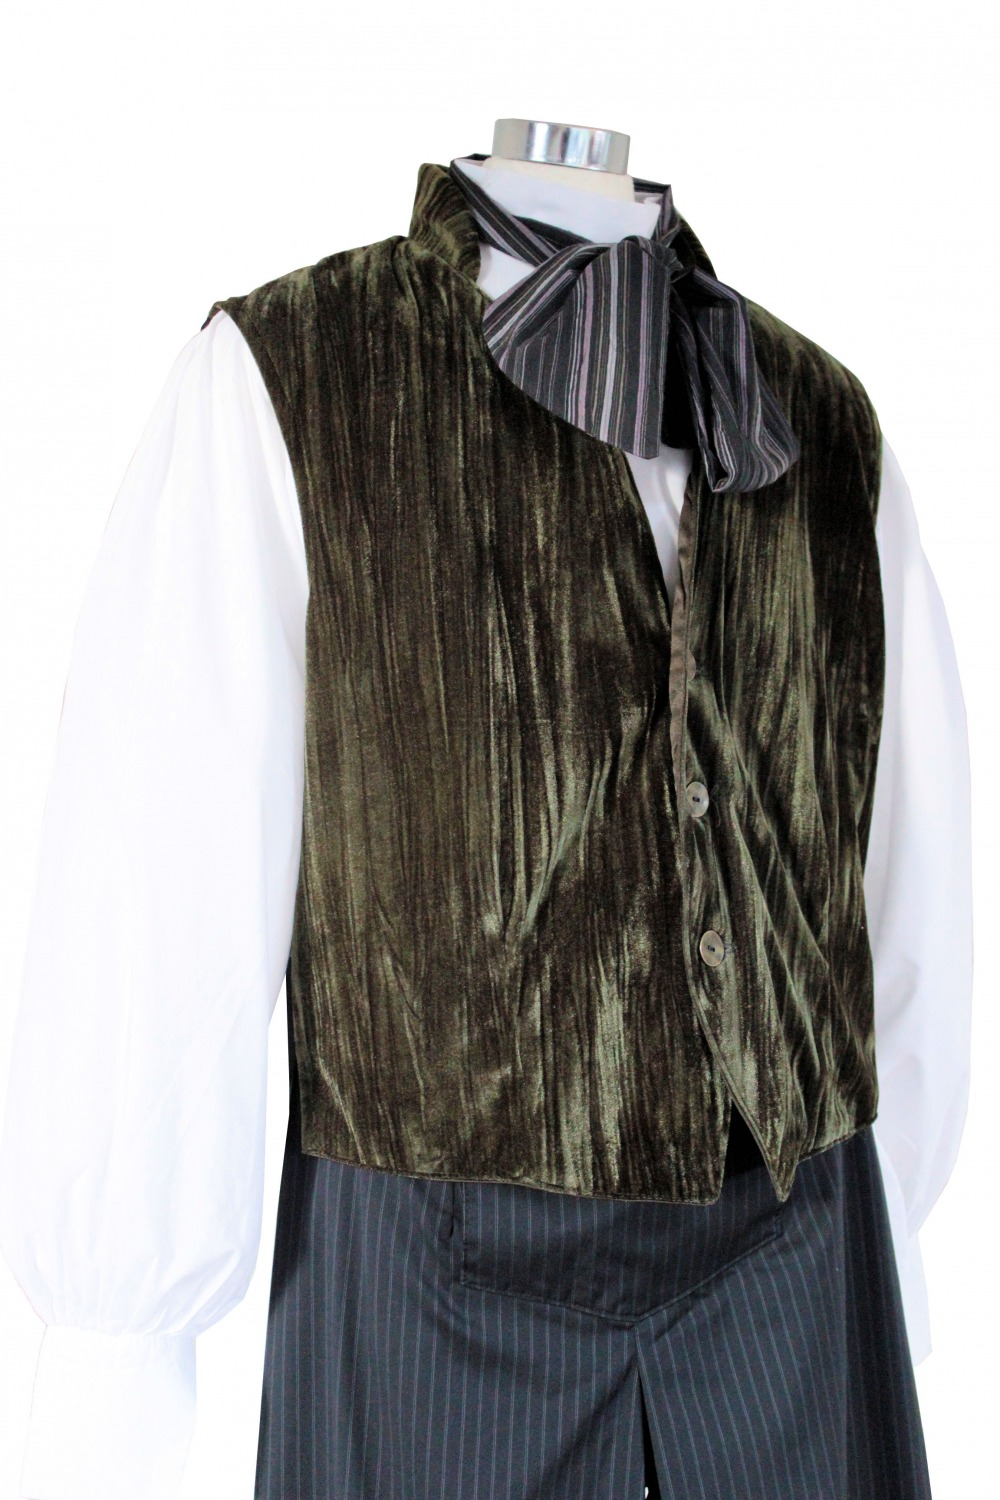 Men's Victorian Edwardian Working Class Poor Man Costume Sweeney Todd Size M-L Image